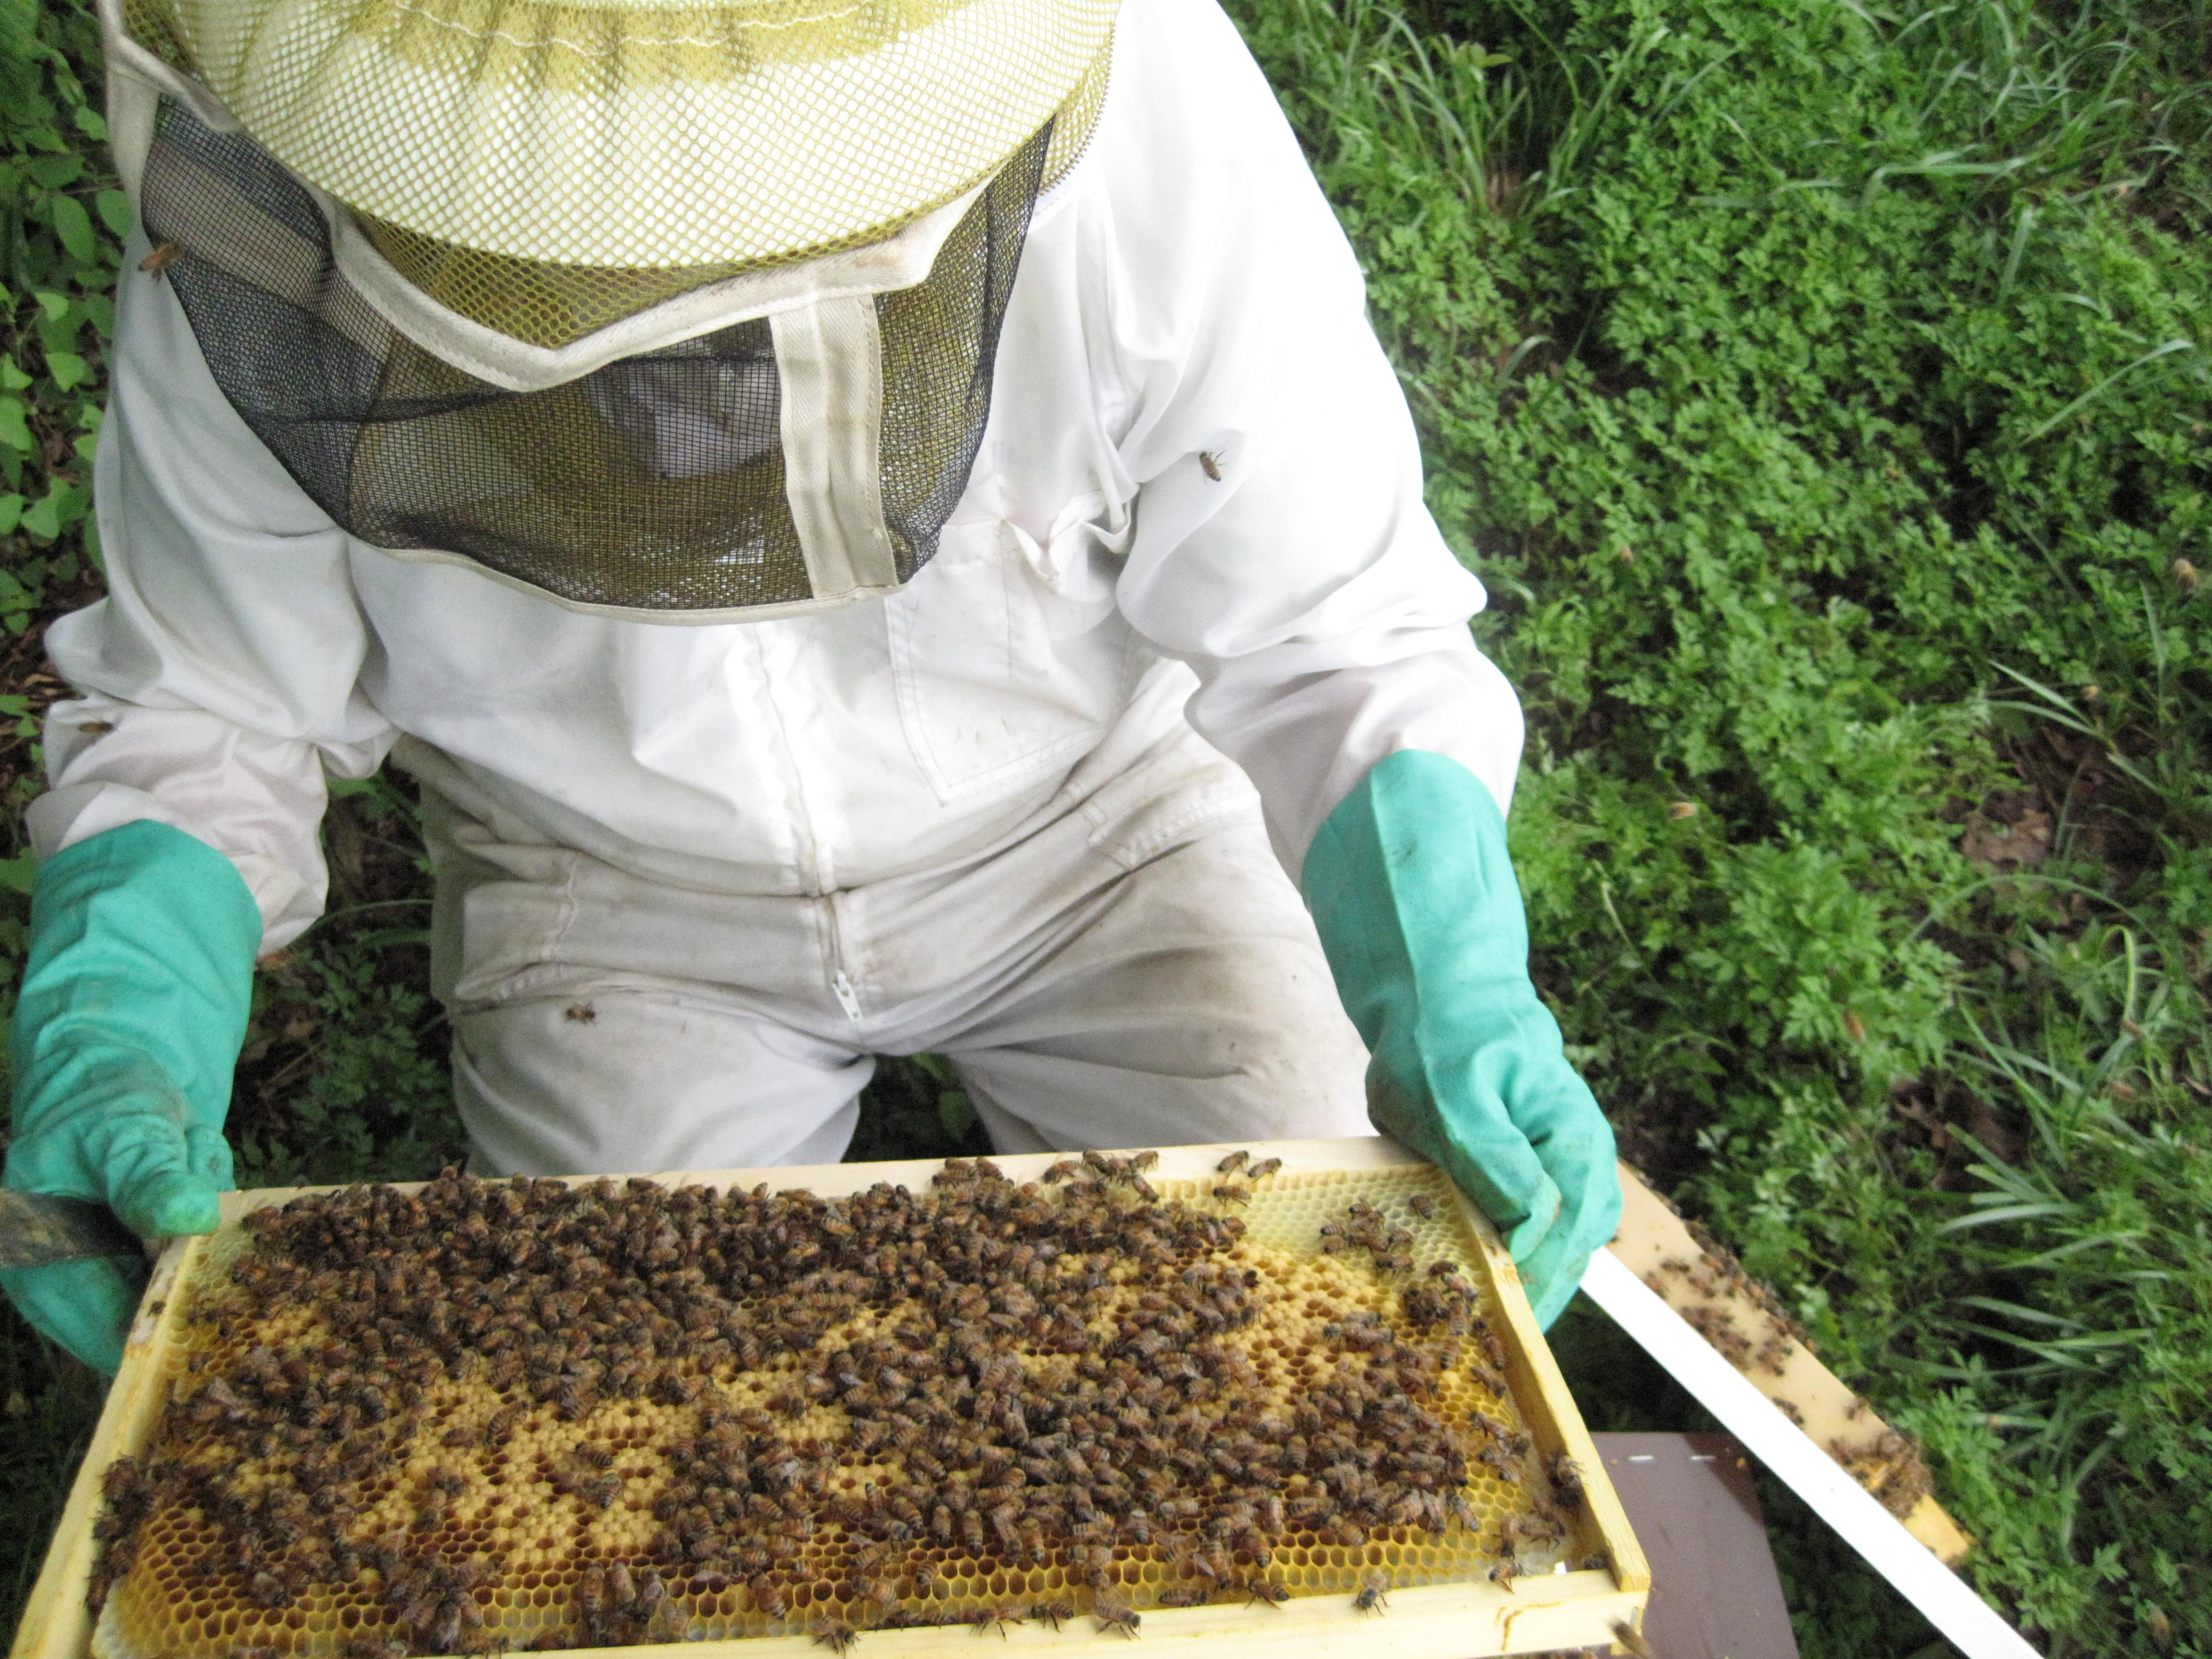 UMD researcher inspects bees